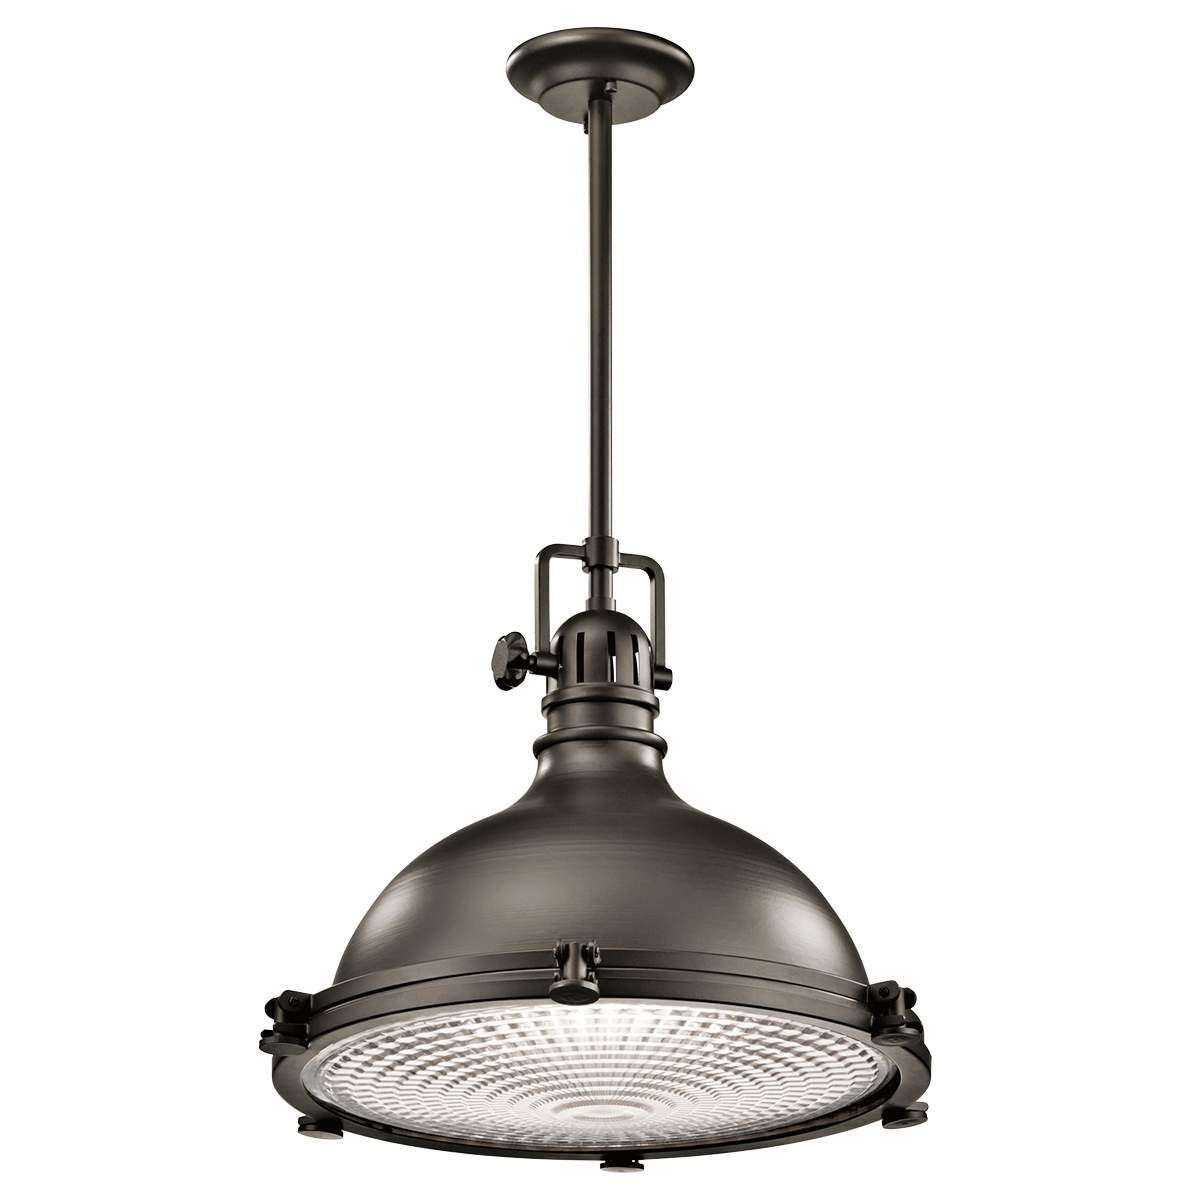 Hatteras Bay - Pendant in Olde Bronze Finish